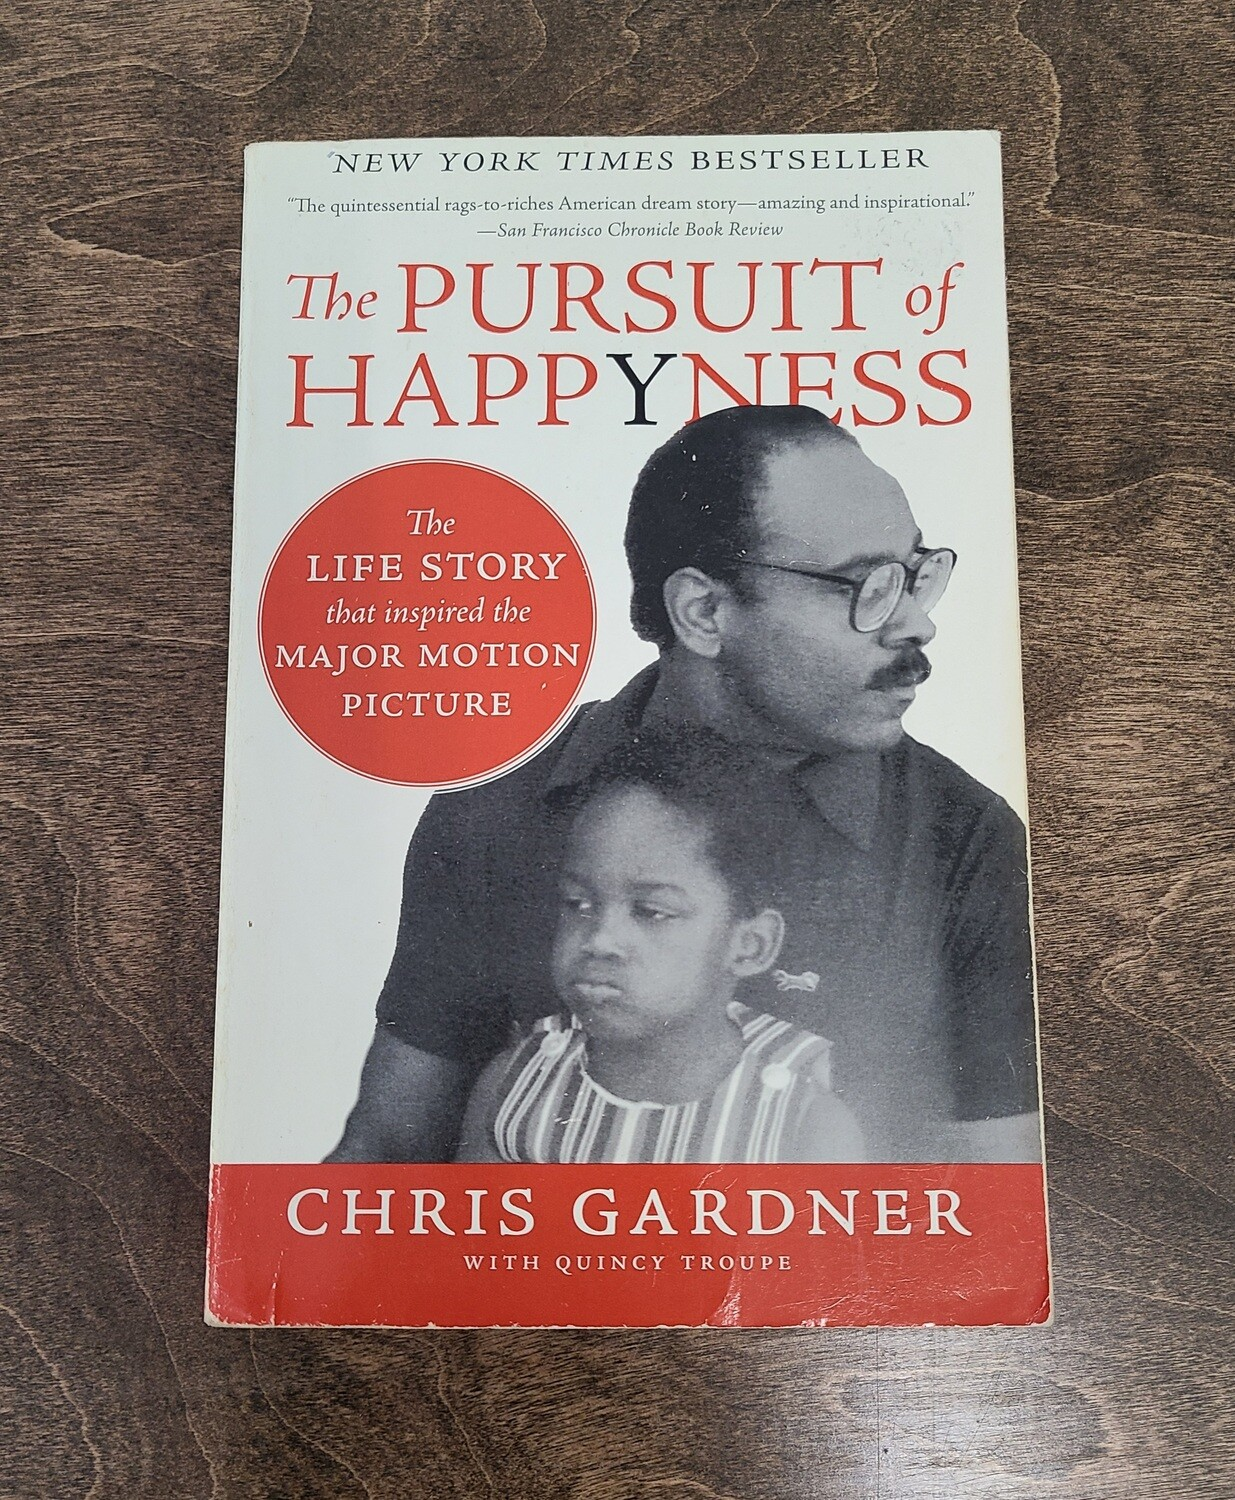 The Pursuit of Happyness by Chris Gardner with Quincy Troupe